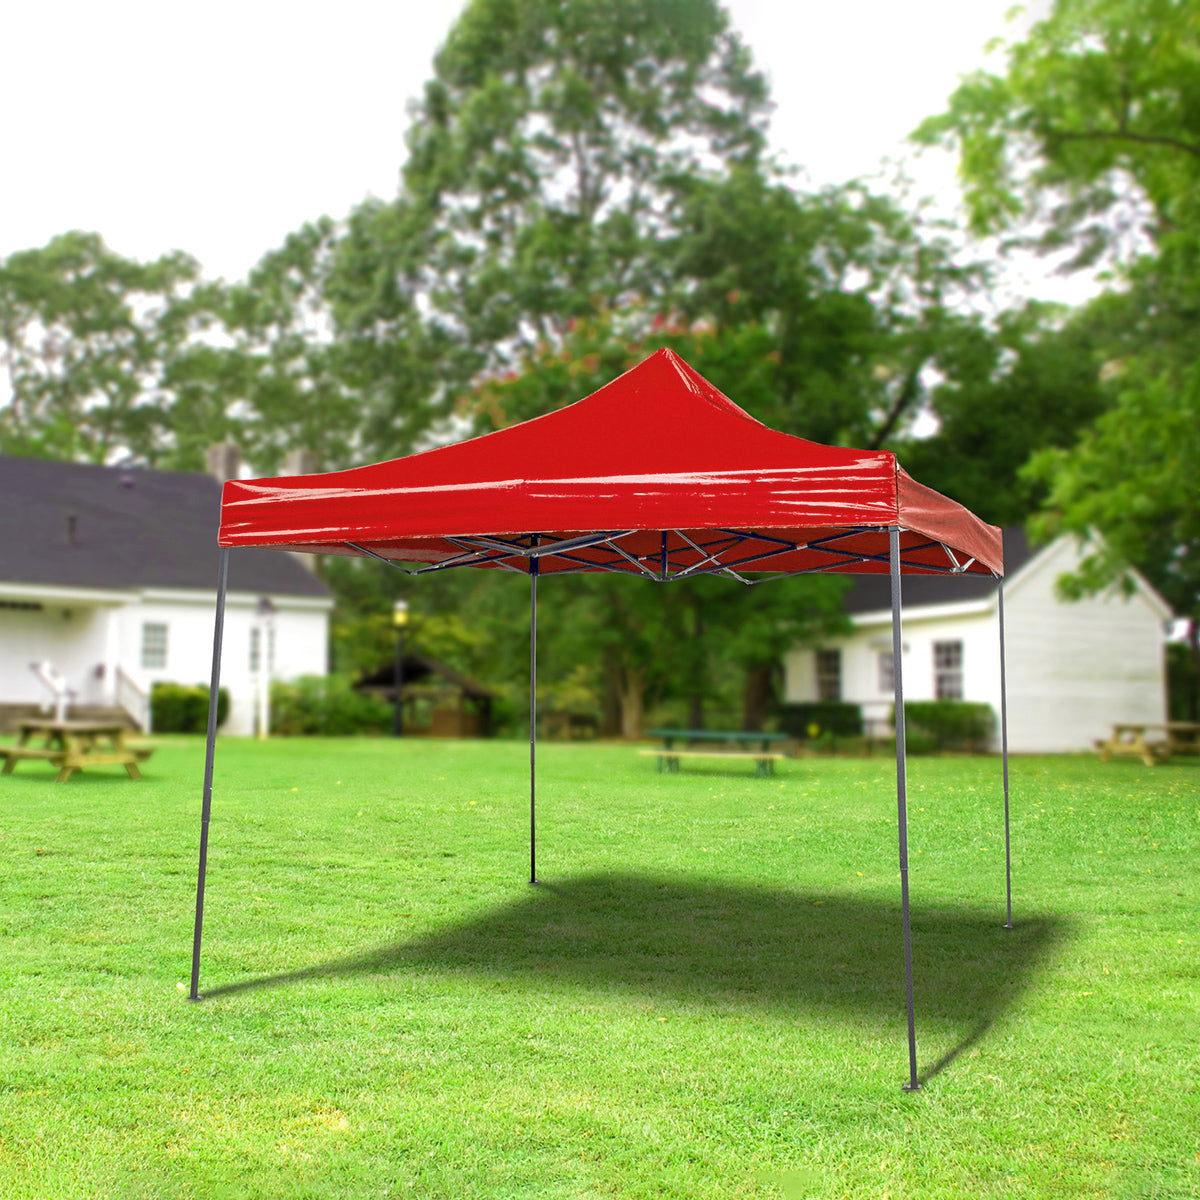 Image of 10x10 Foot Pop Up Gazebo Canopy, Red